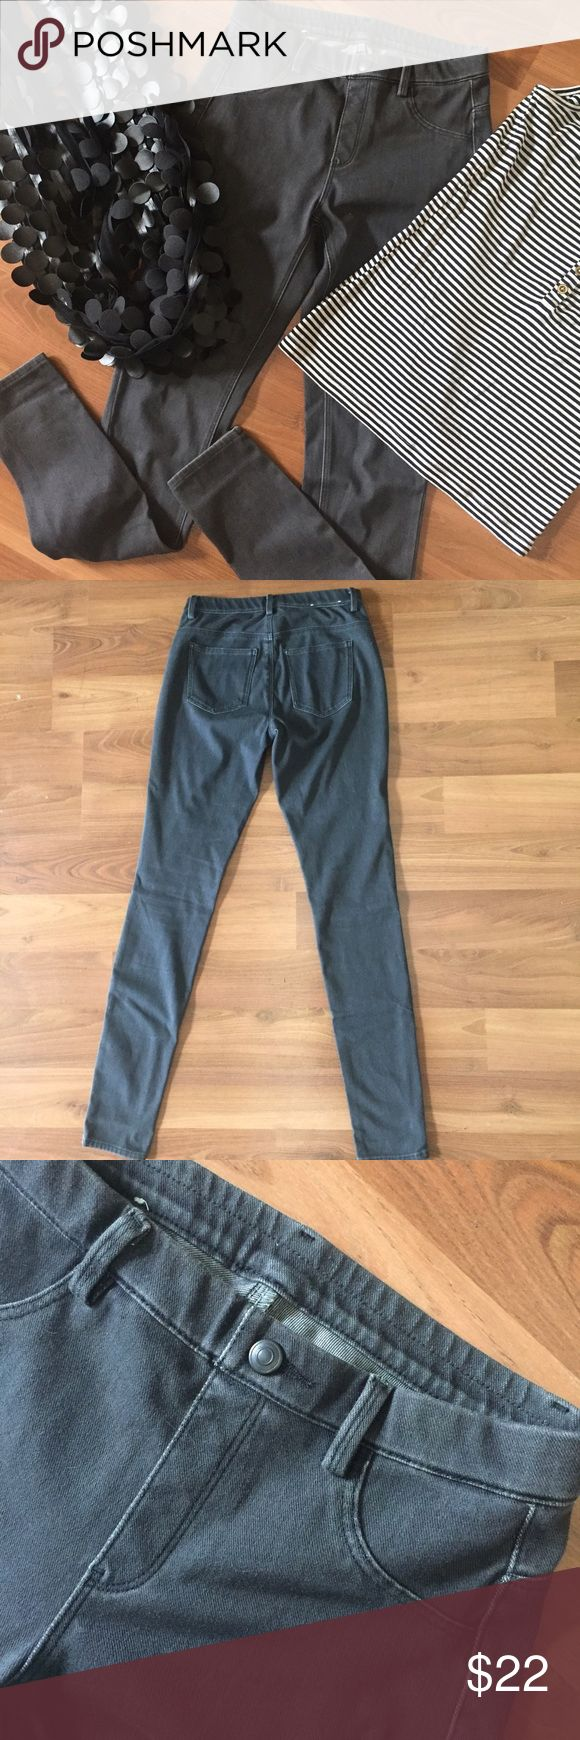 Stretchy denim Uniqlo pant A very comfy pair of legging denim by Uniqlo. XS waist 24-25 in. So soft 57% cotton 30% poly 13% spandex. Beautiful dark gray with functional back pockets. Hardly worn. Perfect condition. Tank & scarf also for sale in my closet. Uniqlo Pants